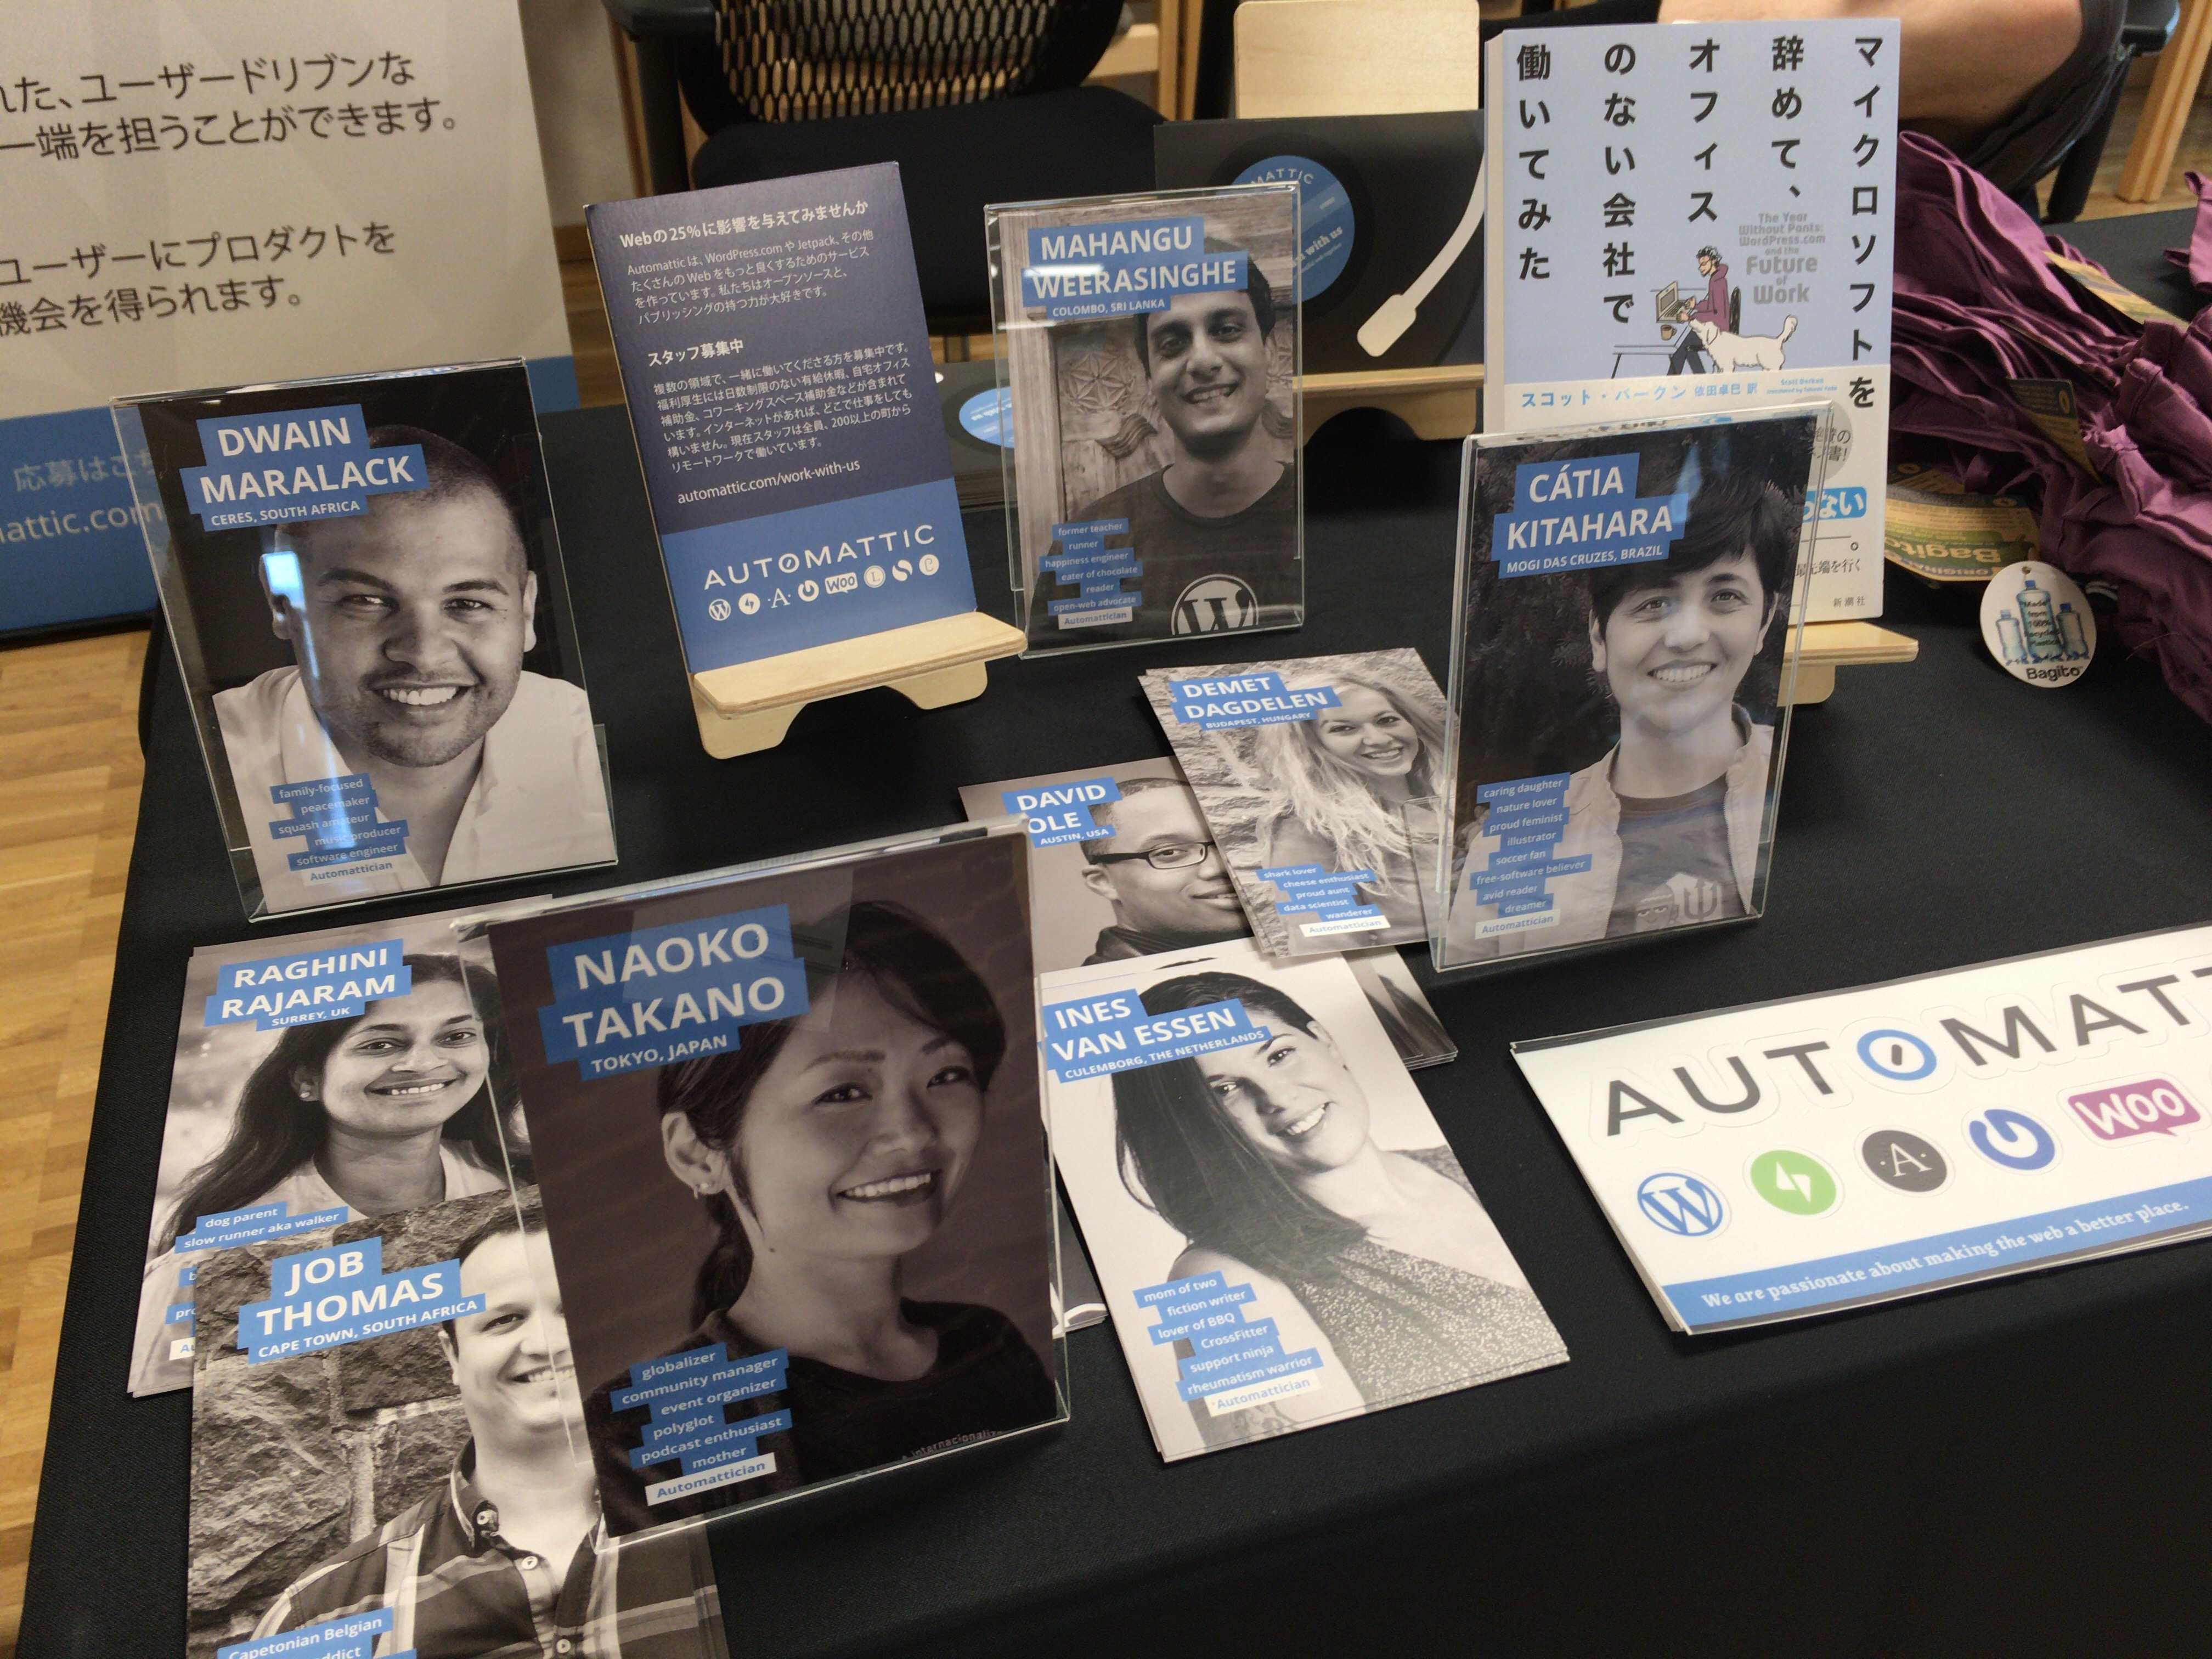 Automattic booth at WordCamp Kyoto 2017